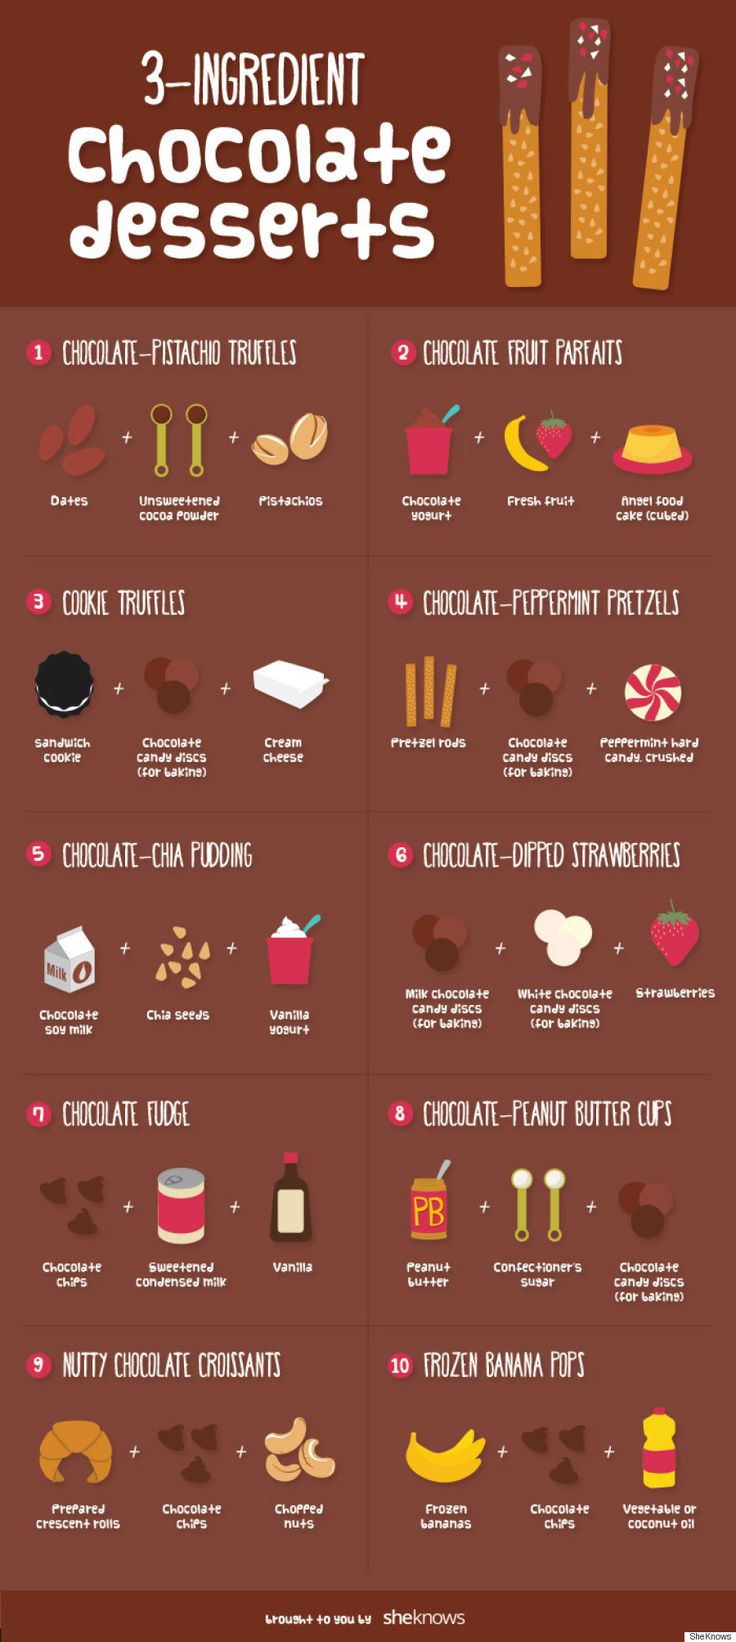 3-ingredient chocolate desserts to help you get a quick fix